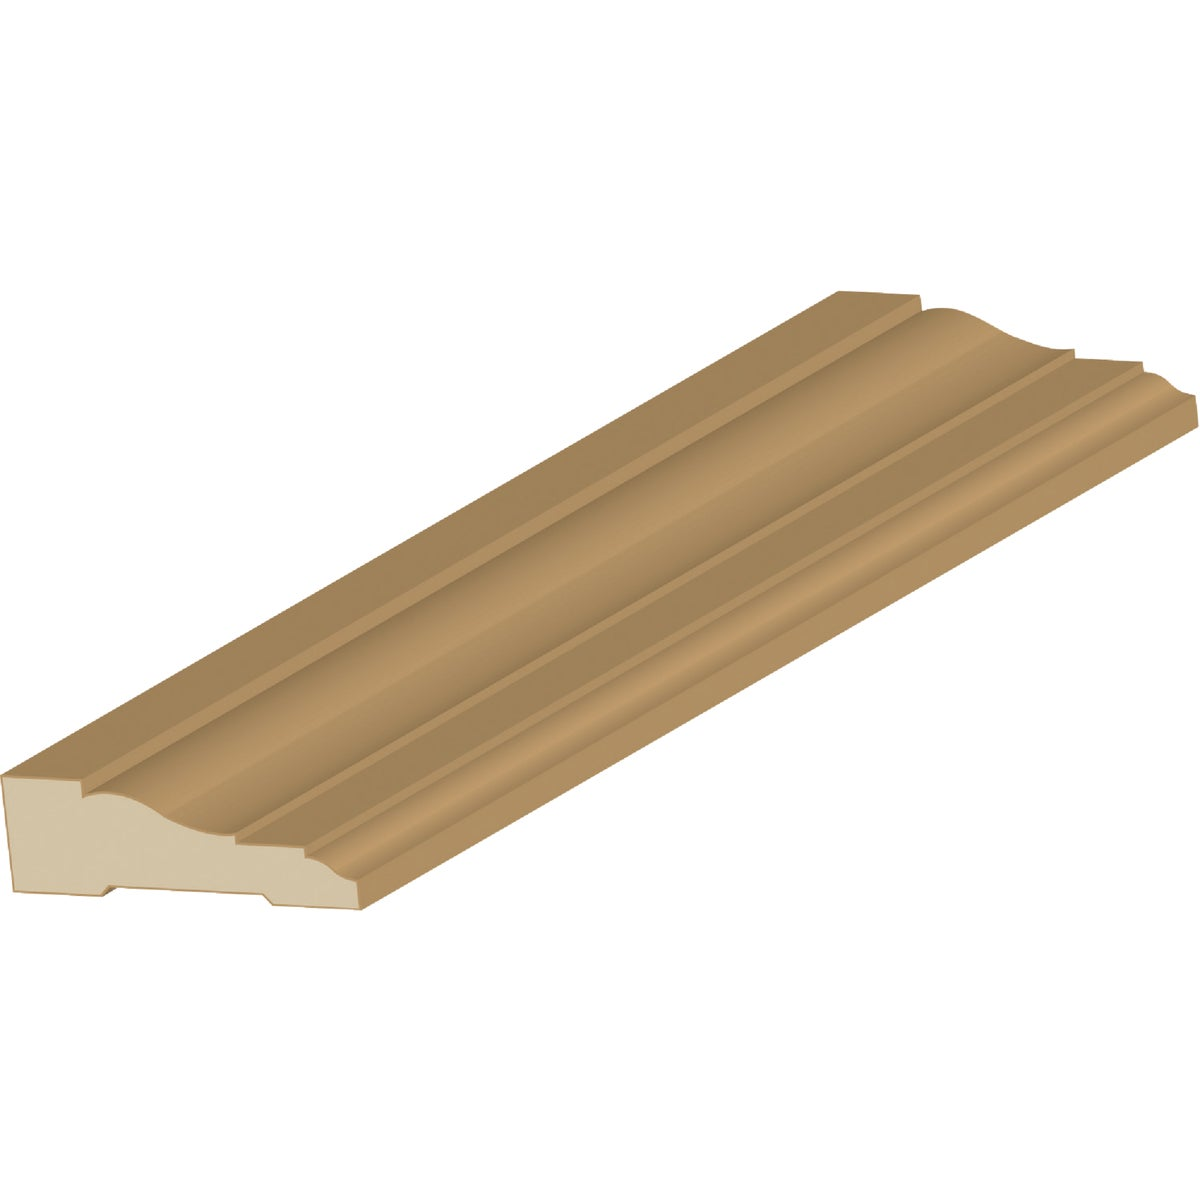 WM366 PFJ 7' COL CASING - 36670FJPI by Jim White Millwork